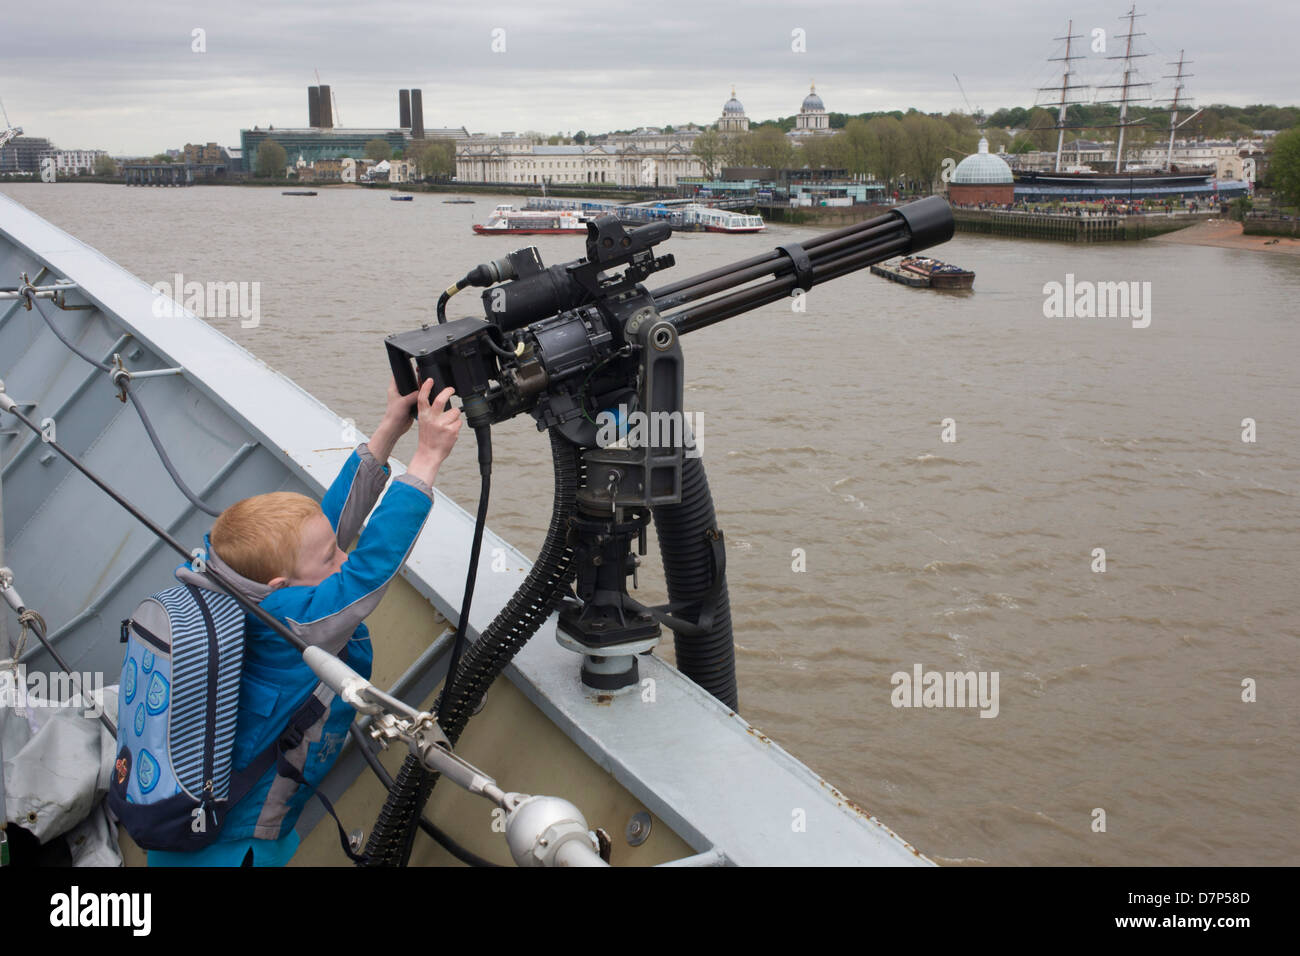 A young boy, too short to reach points a Minigun cannon from the top deck of HMS Illustrious over the river Thames - Stock Image